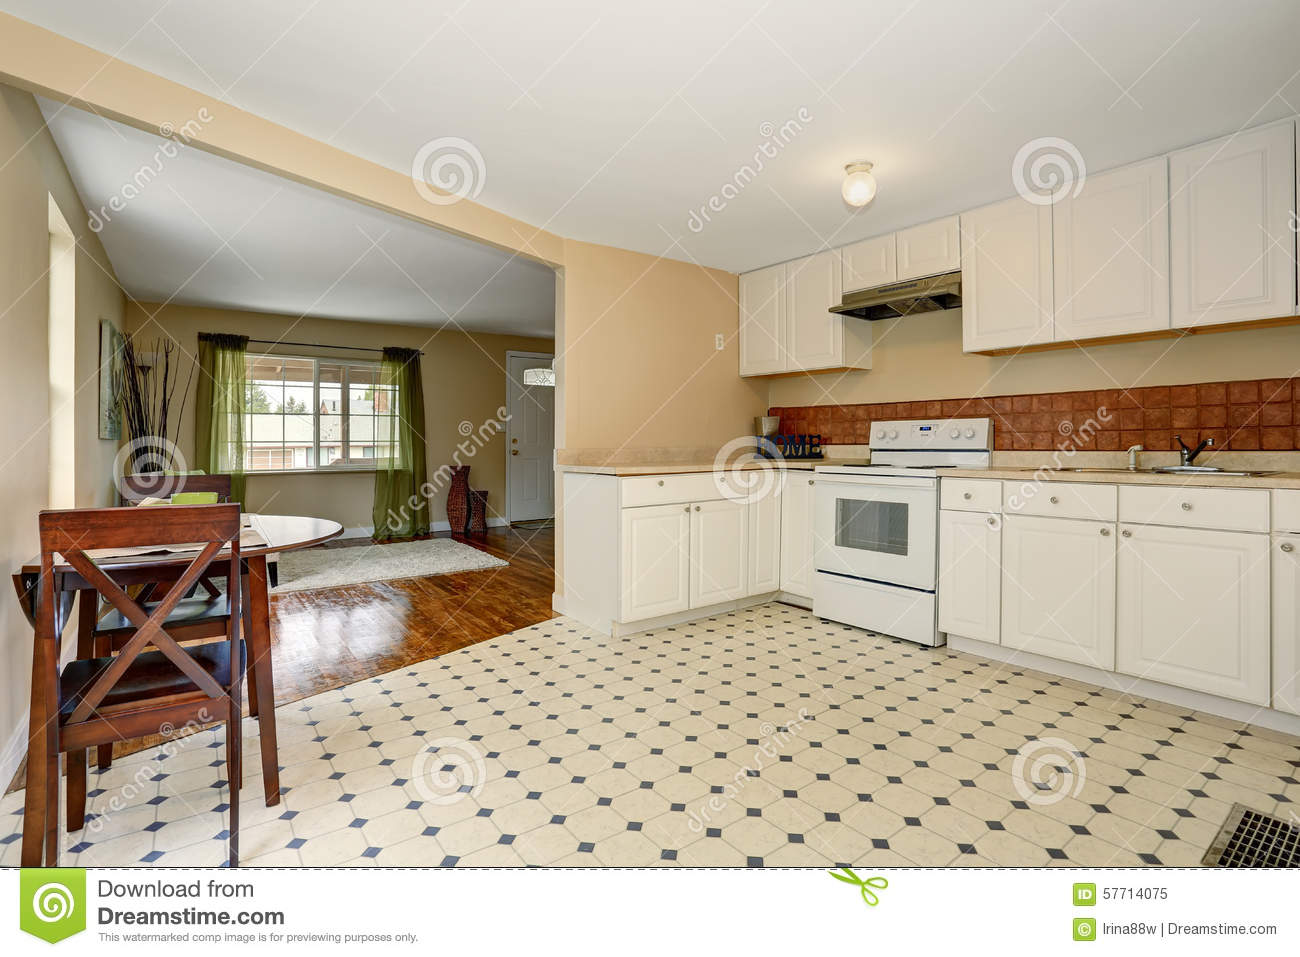 Very simple kitchen with tile floor stock photo image 57714075 - Simple kitchen tile ...